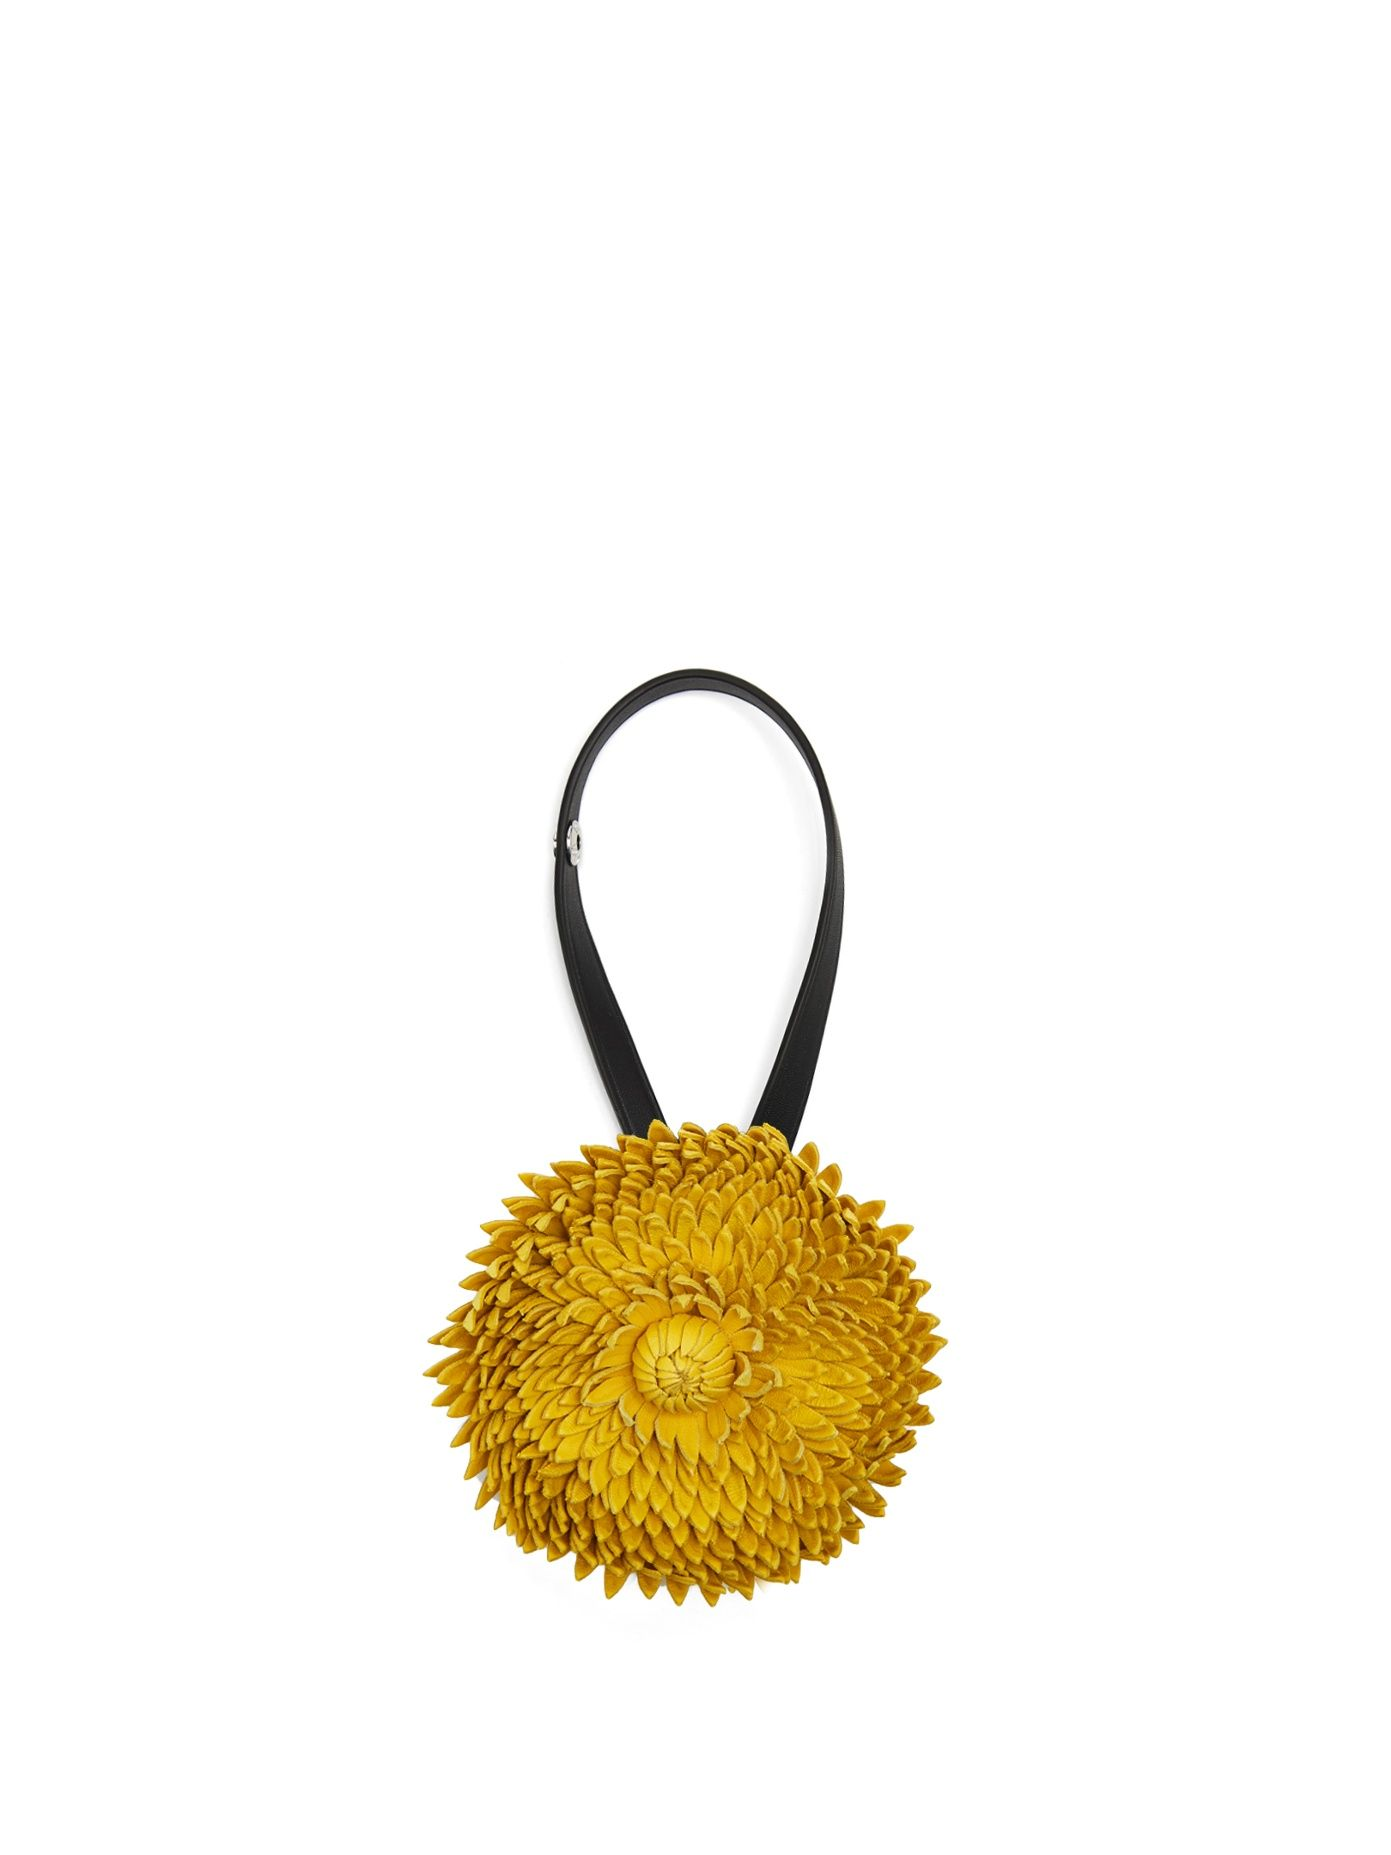 Loewe X William Morris Calendula flower bag charm D77HWWWp